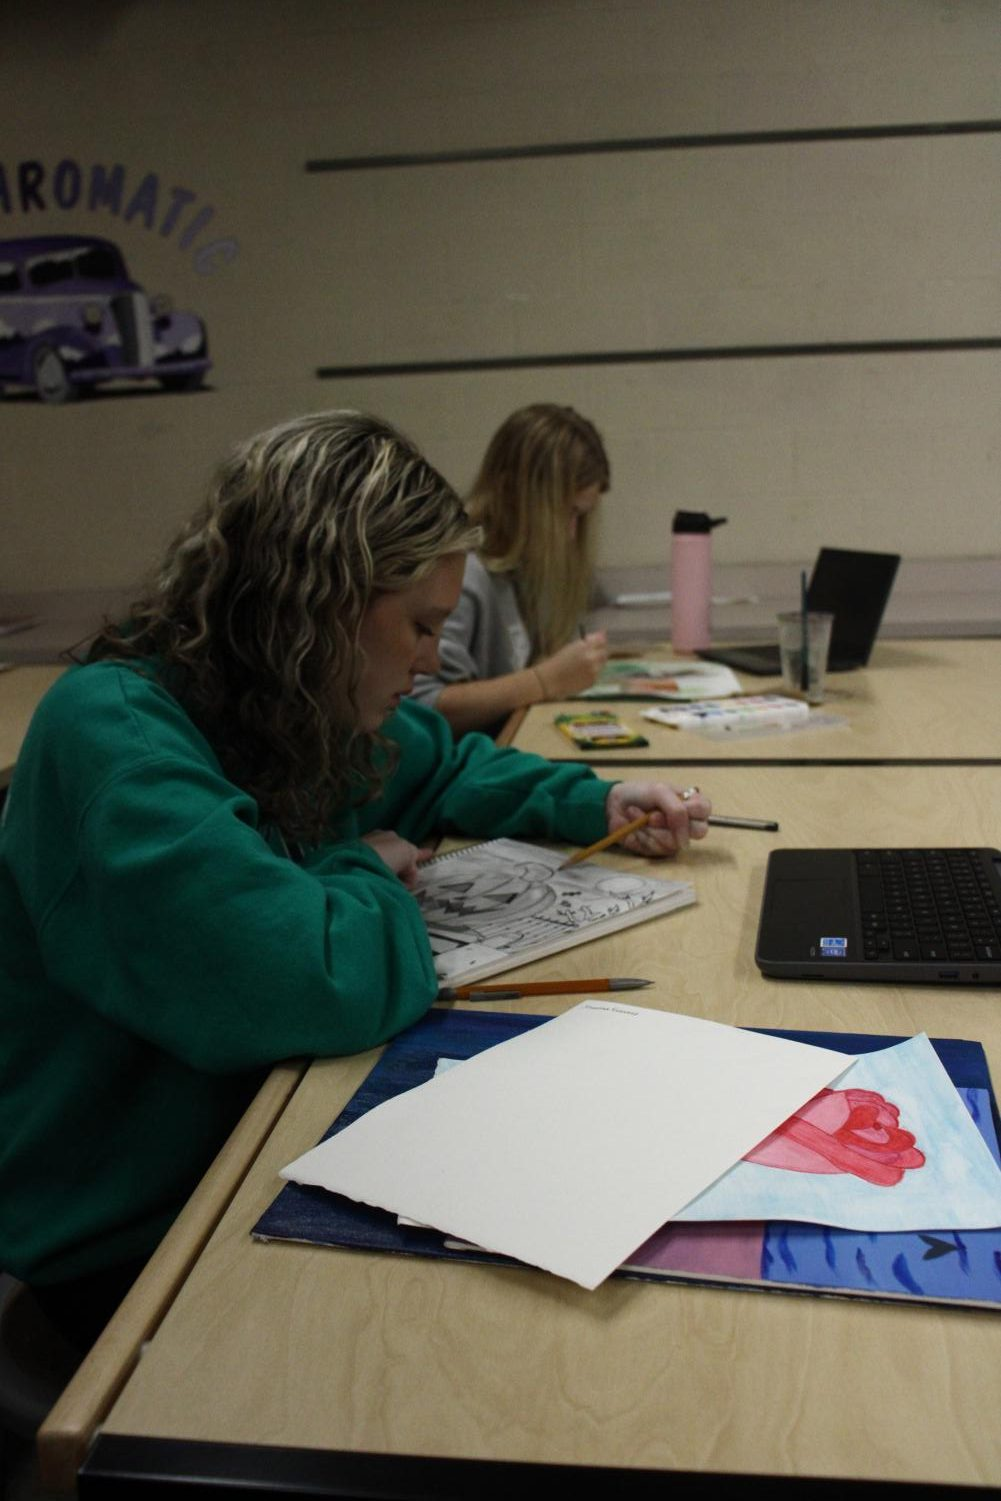 Drawing+and+painting+fundamentals+10%2F7+%28Photos+by+Alyssa+Lai%29